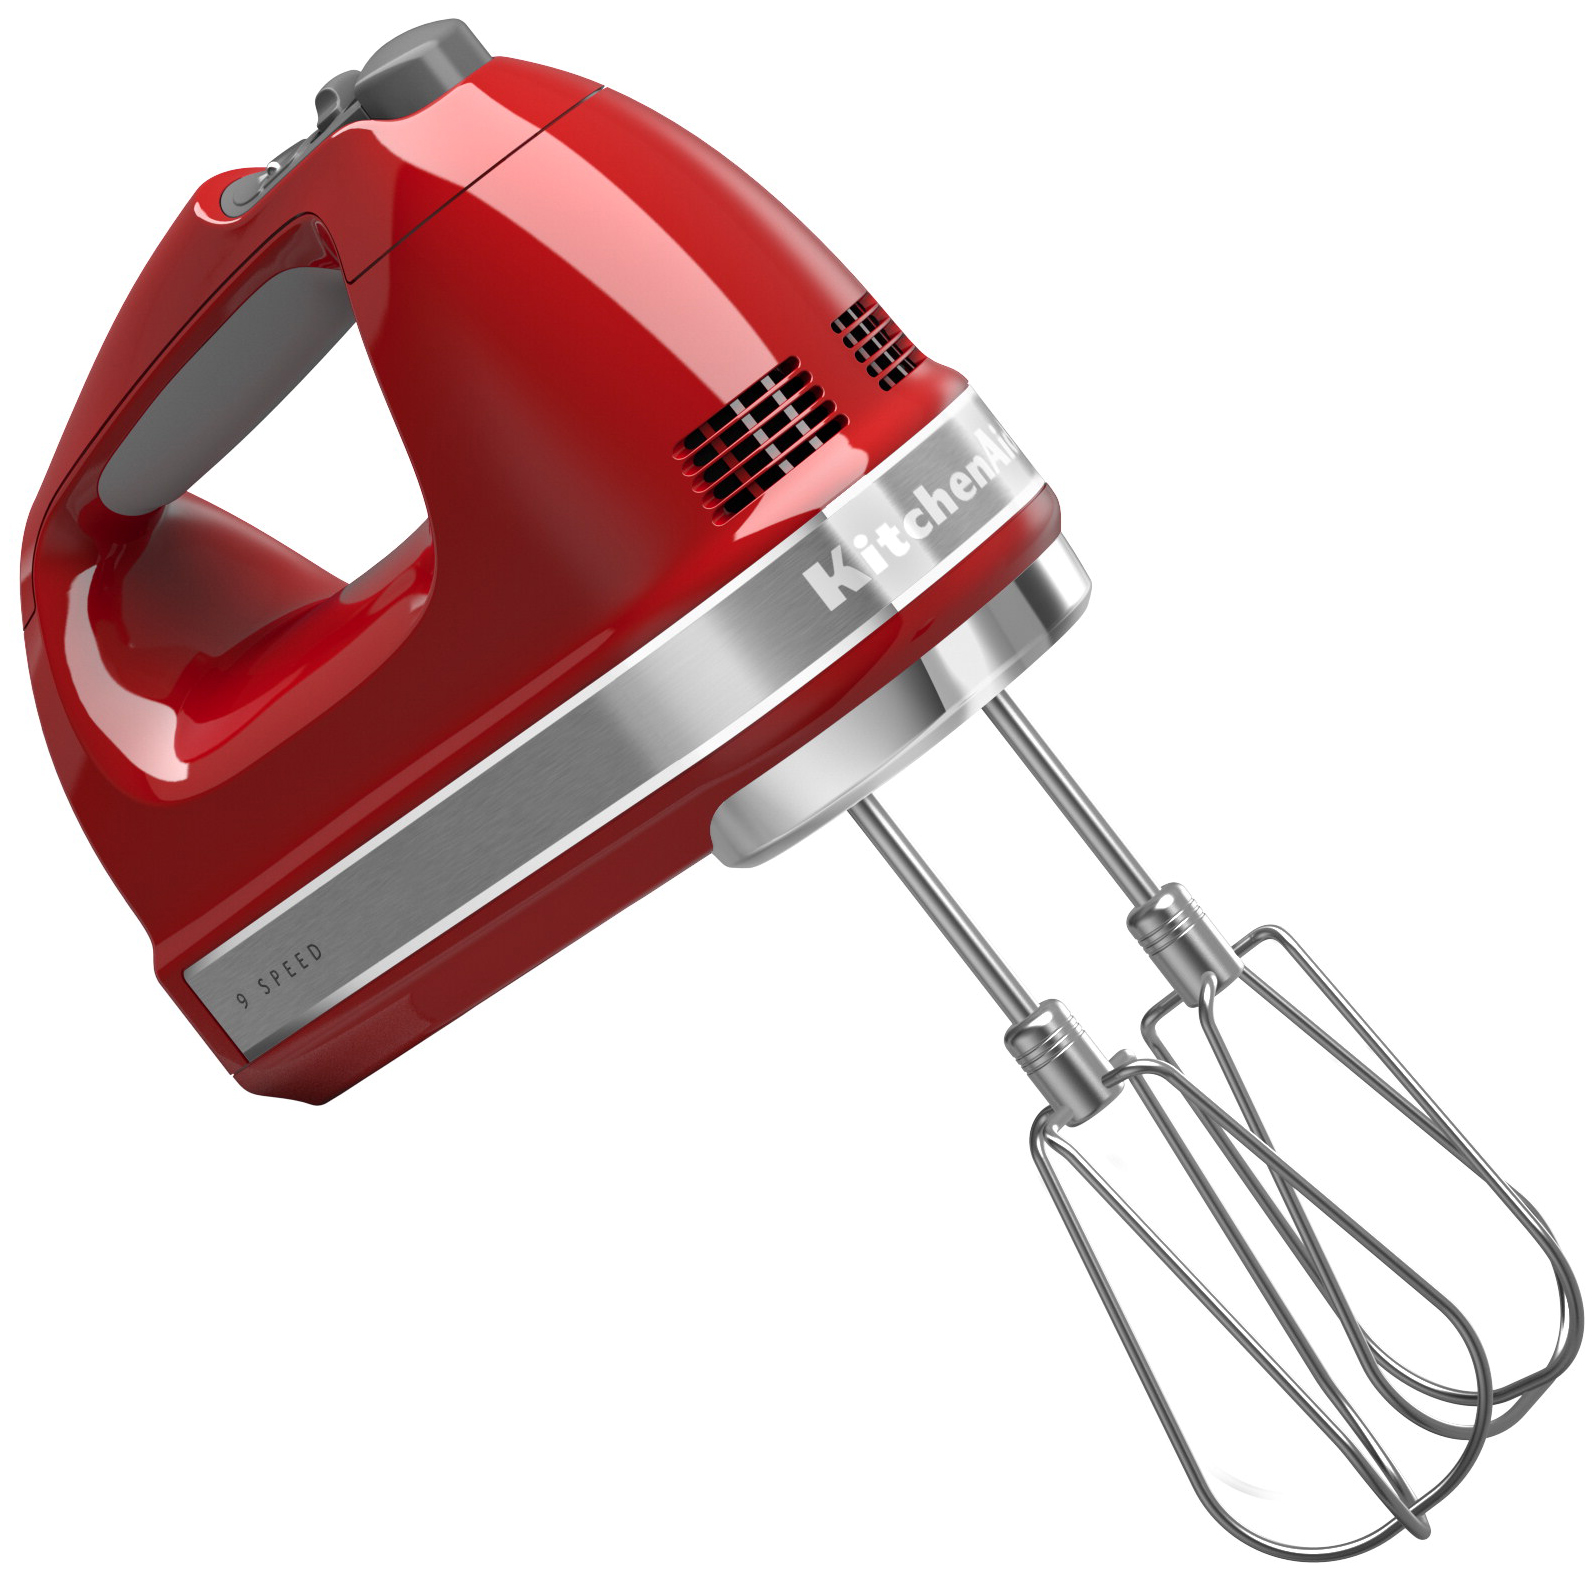 KitchenAid Elvisp 9 Hastigheter Röd